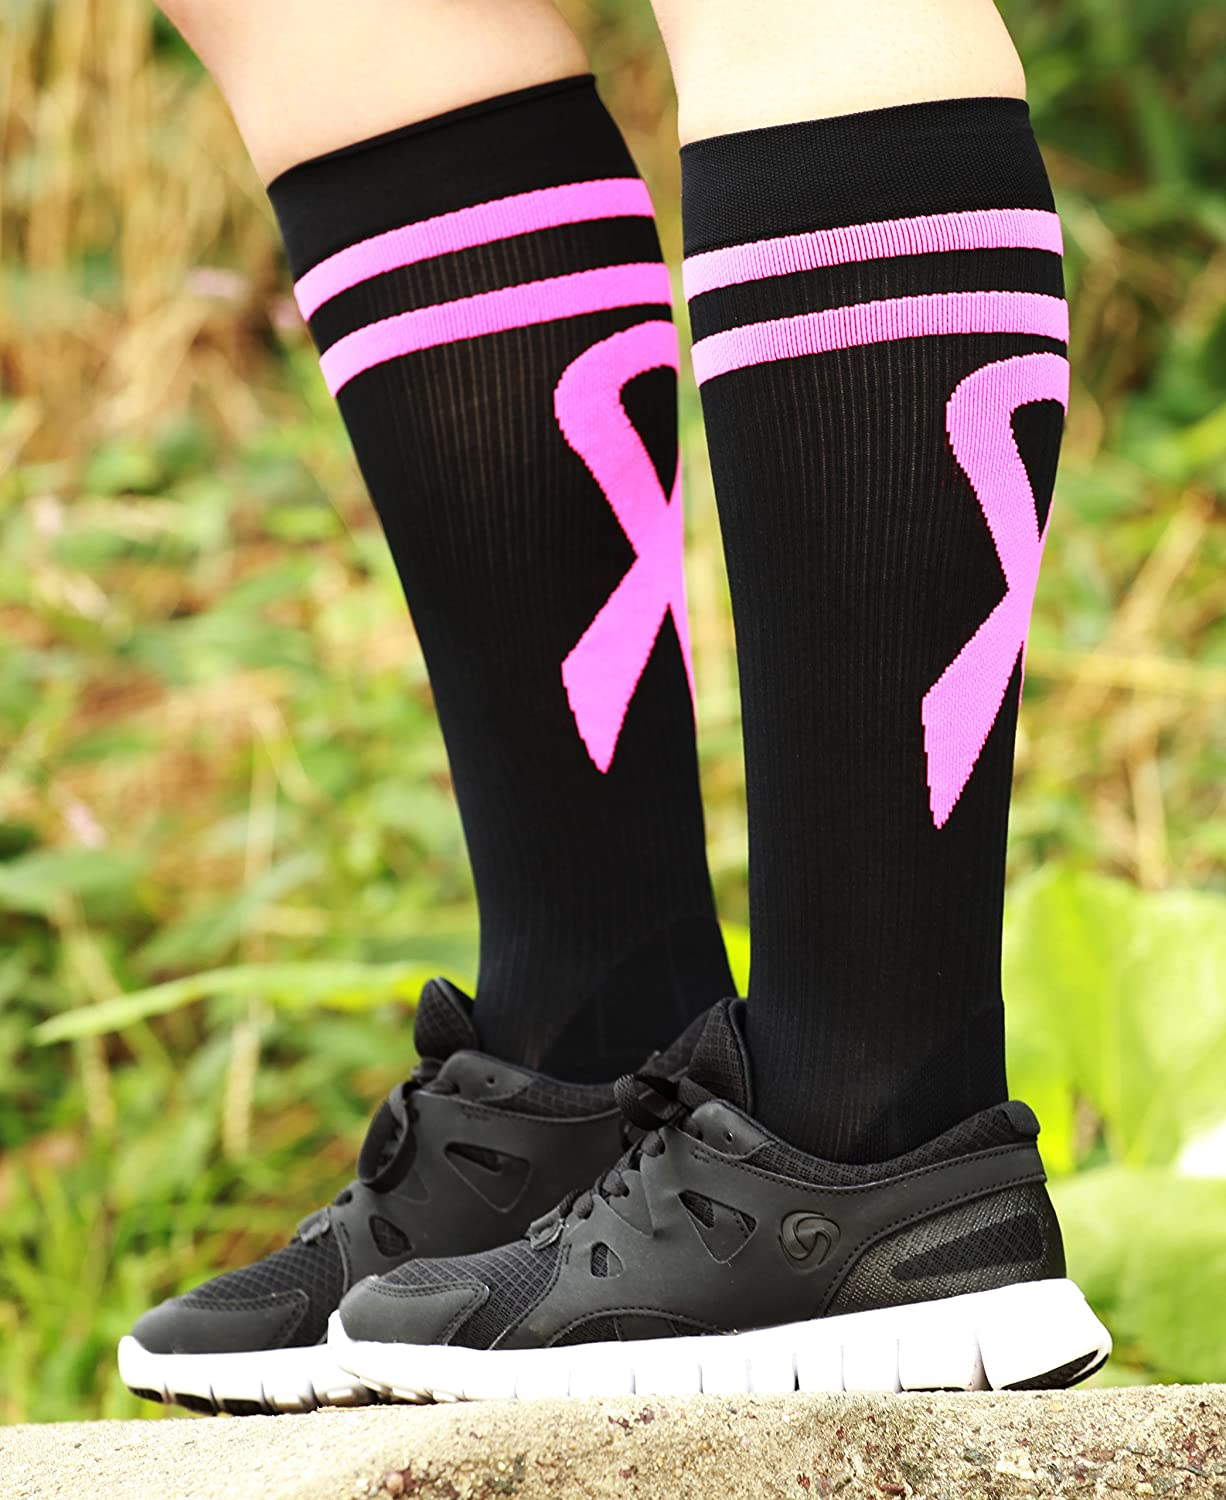 cabf31ad20 ... Mojo Compression Socks Special edition Breast Cancer Ribbon - Firm  Graduated Medical Compression with moisture Coolmax